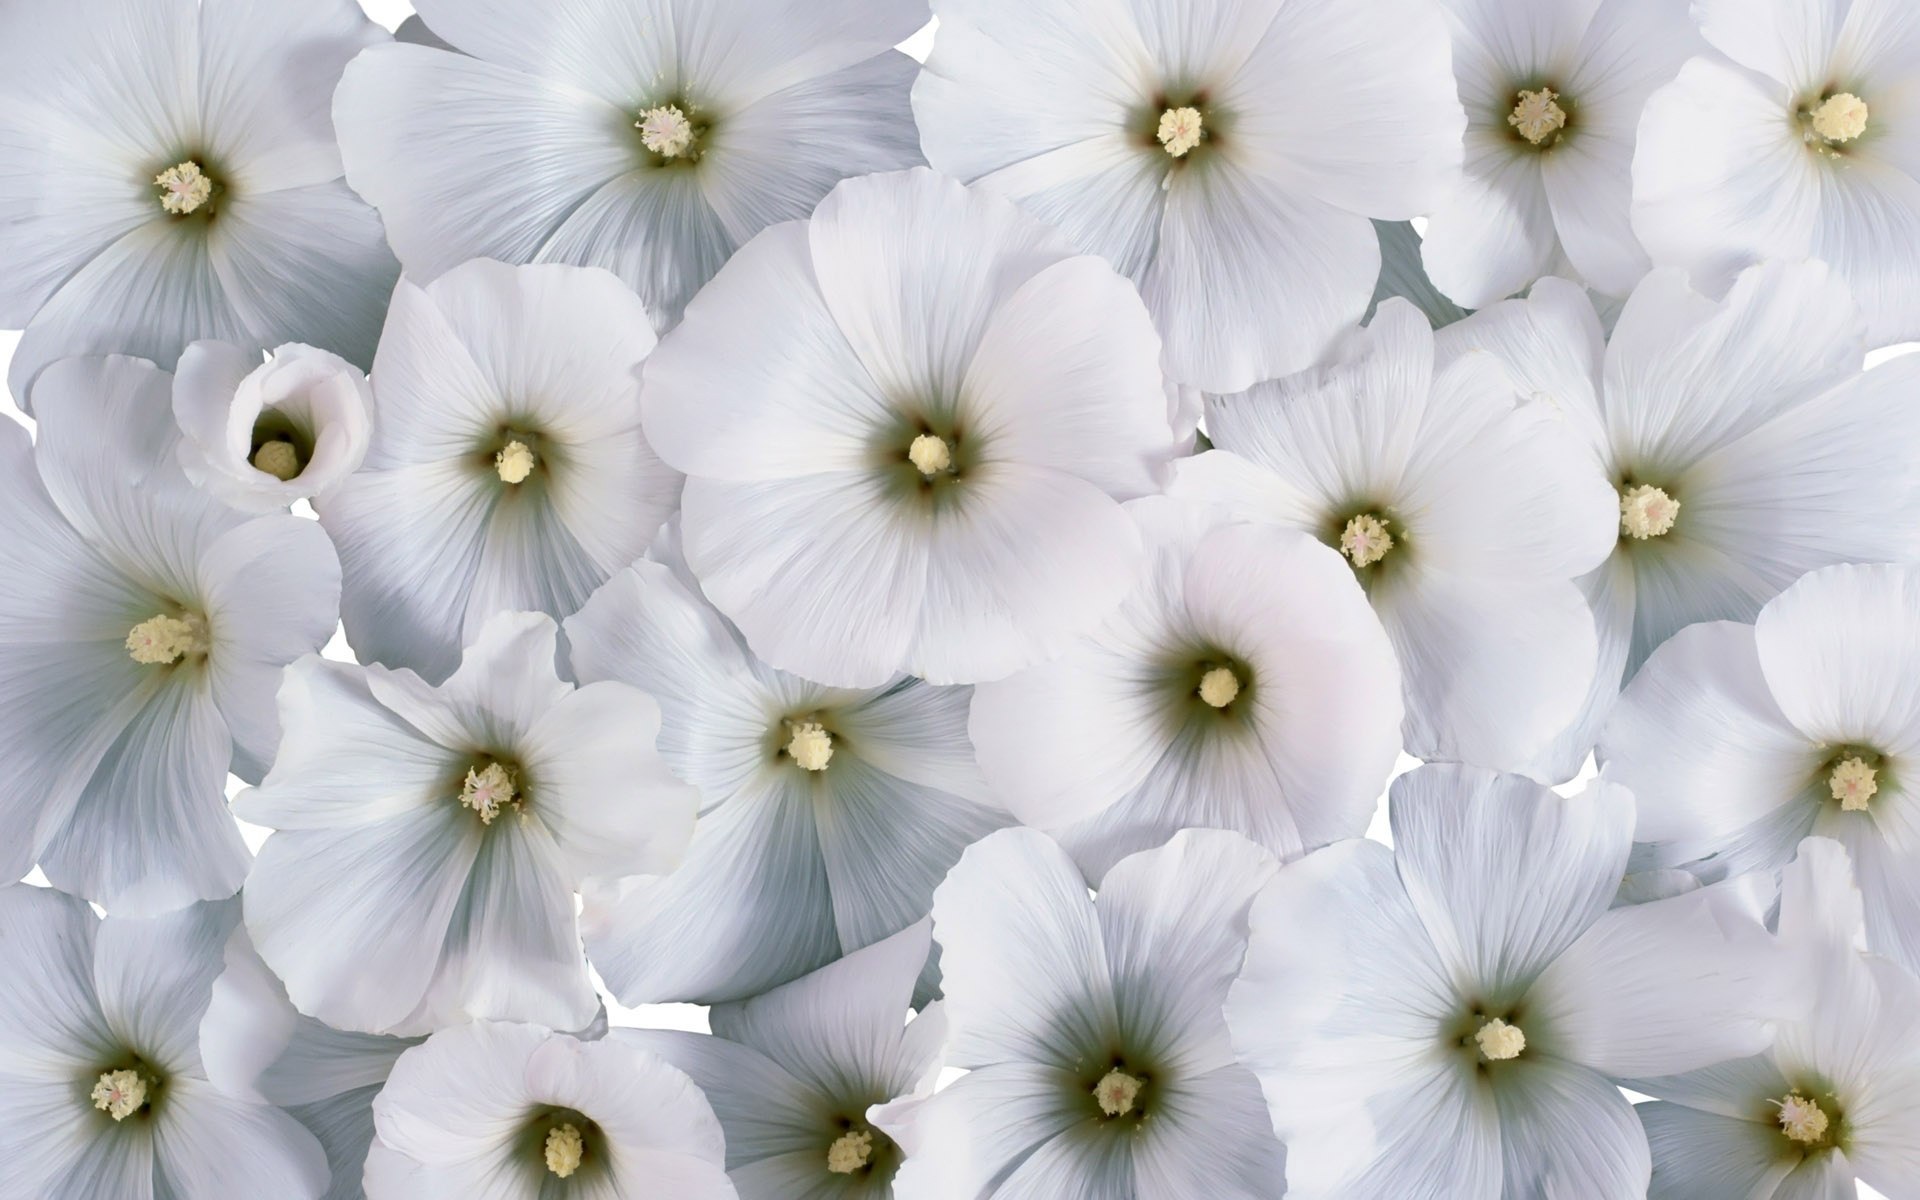 Flowers 42 Nature White Flowers Backgrounds Wallpapers Jpg 227